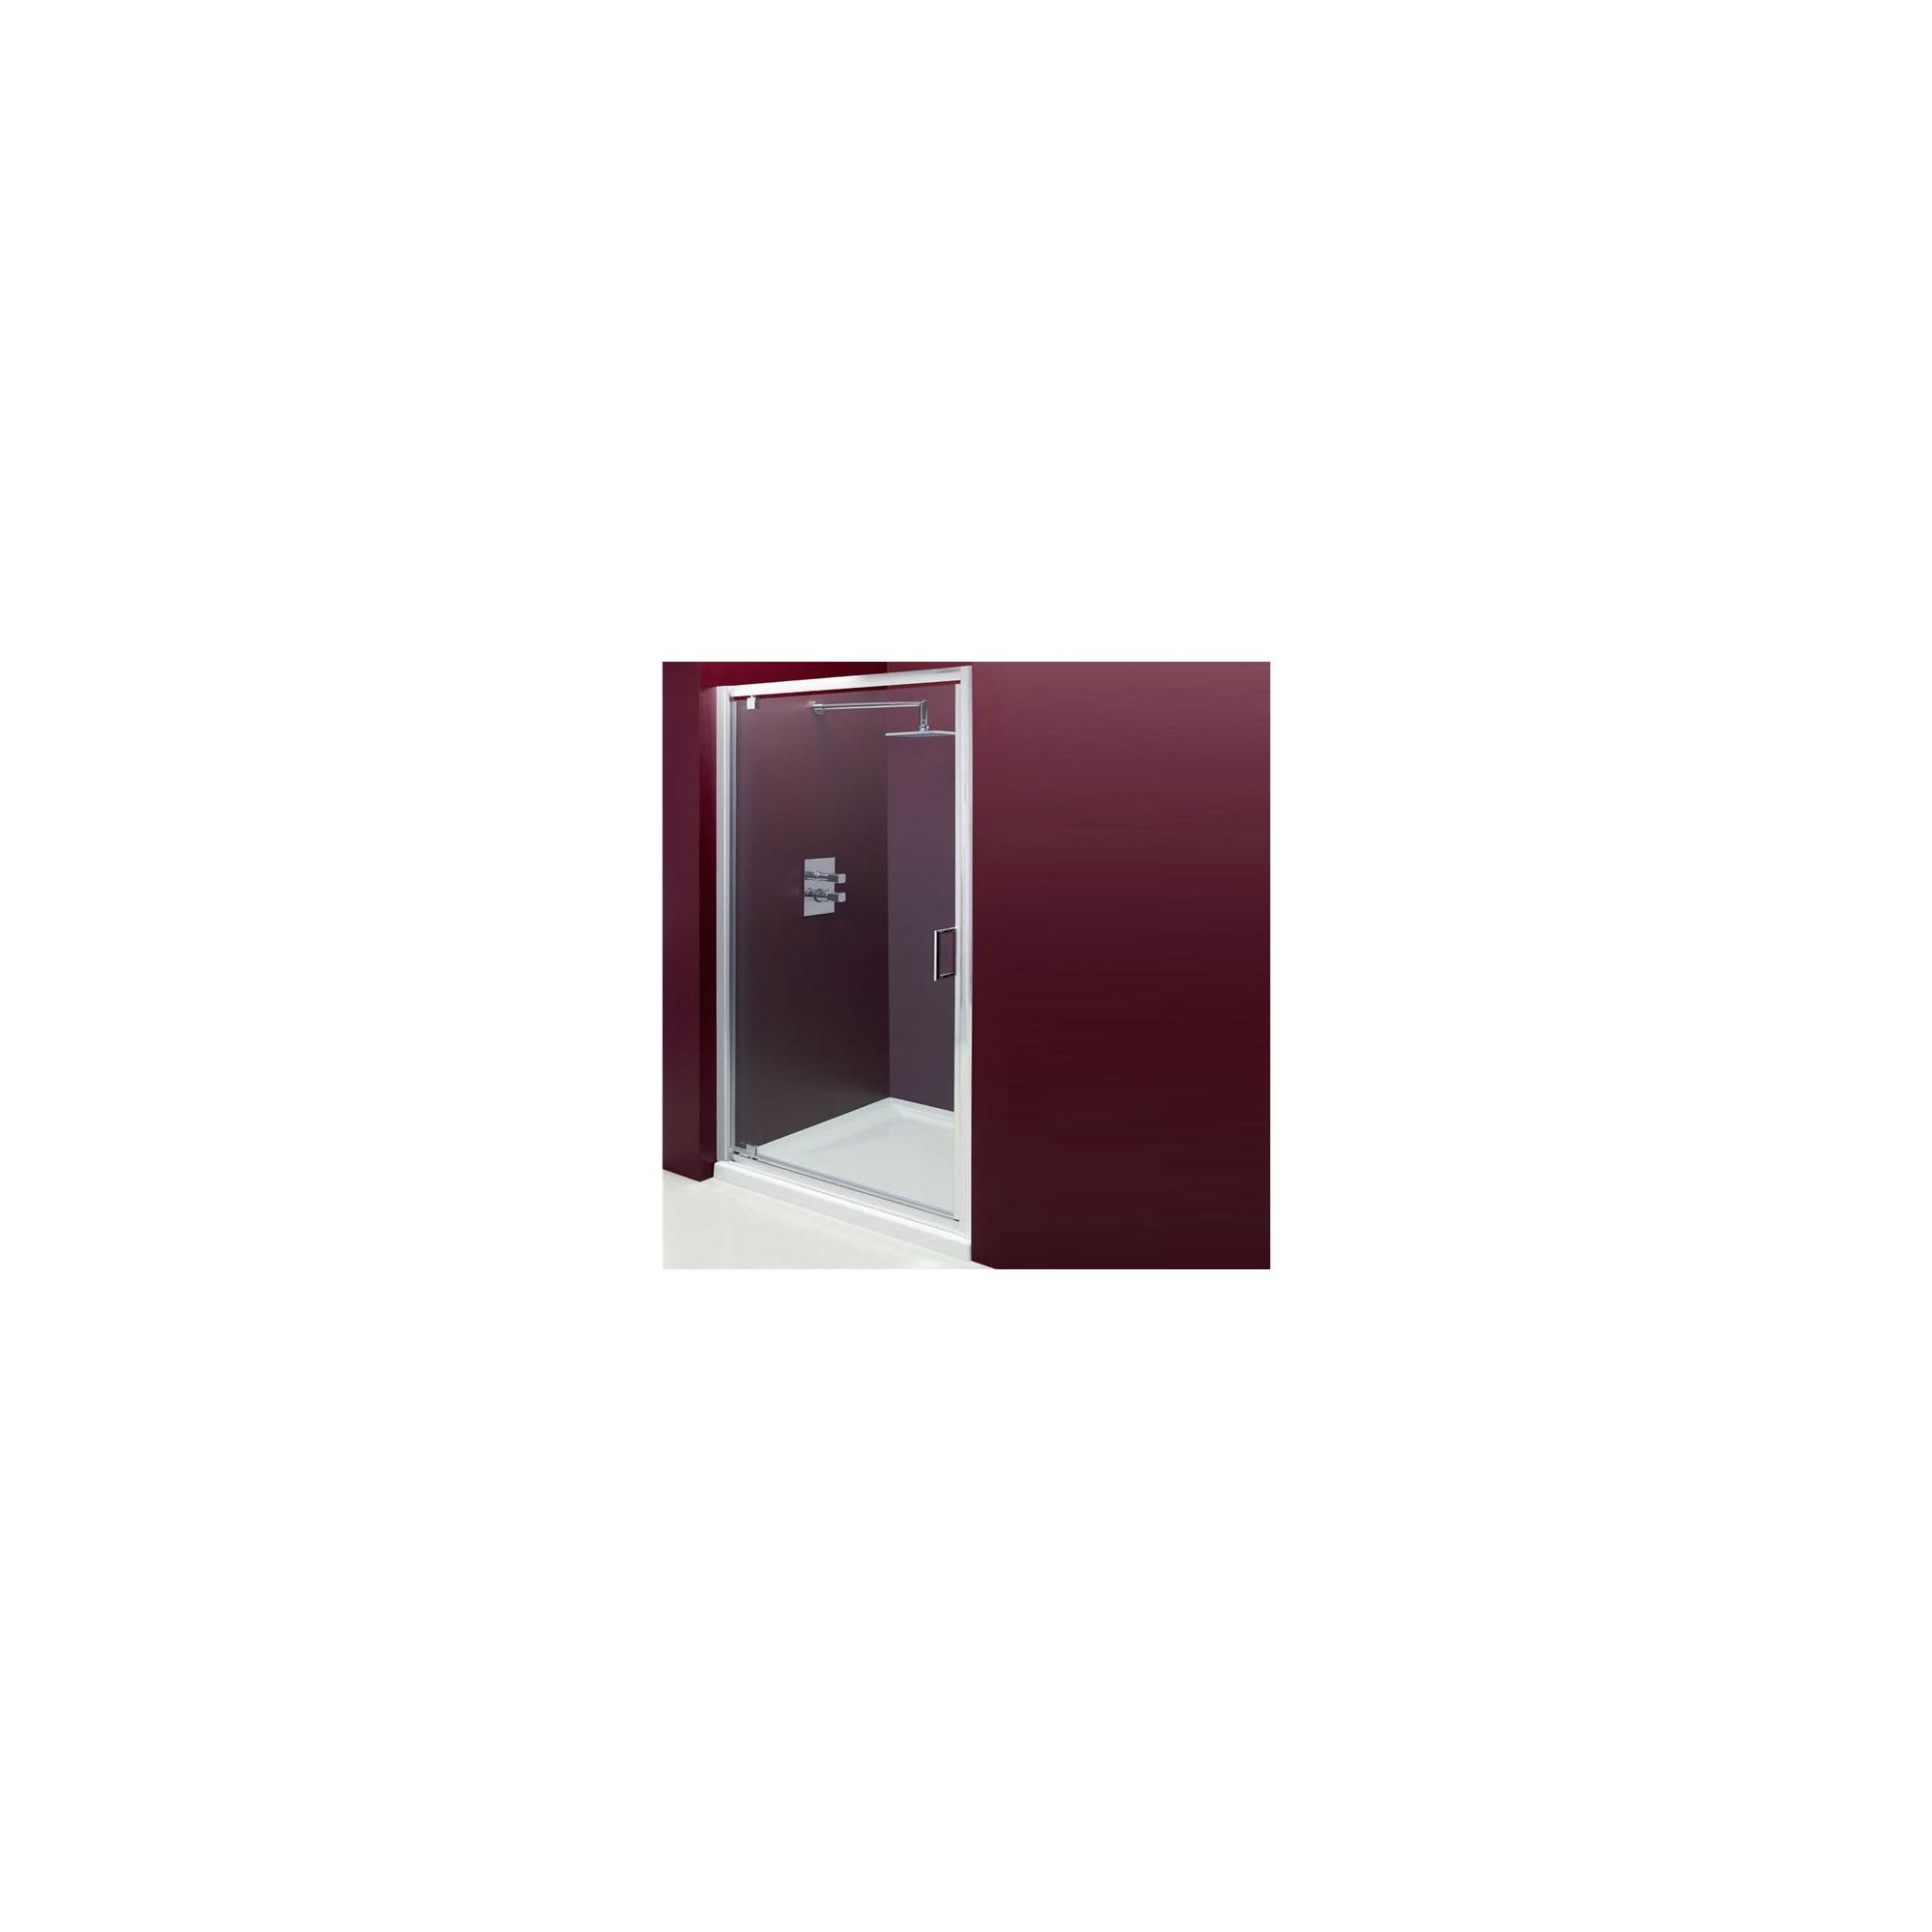 Merlyn Vivid Entree Pivot Door Alcove Shower Enclosure, 900mm x 900mm, Low Profile Tray, 6mm Glass at Tesco Direct